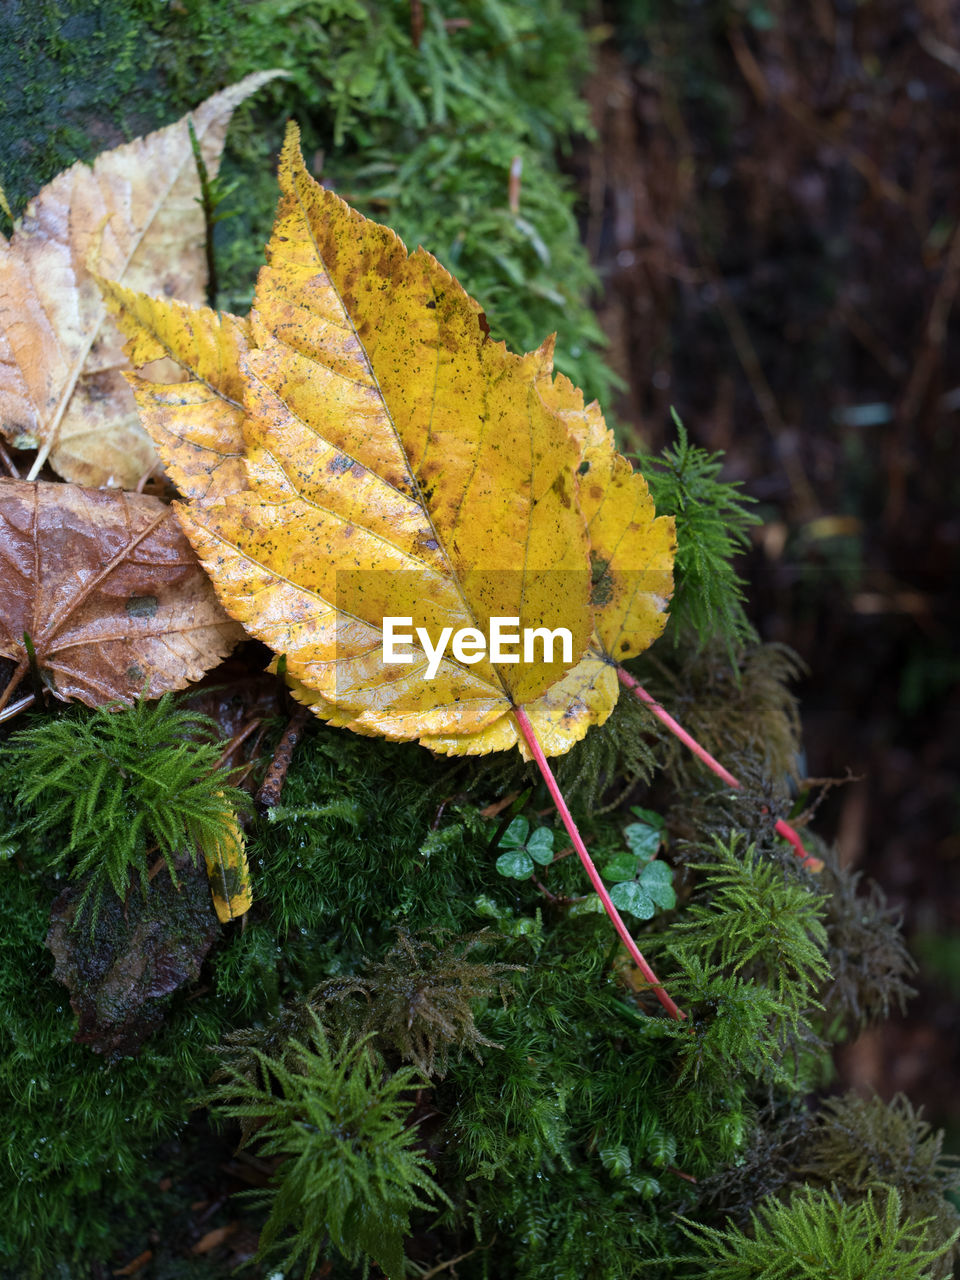 leaf, autumn, change, nature, outdoors, day, green color, no people, close-up, high angle view, beauty in nature, yellow, growth, maple, grass, fragility, tree